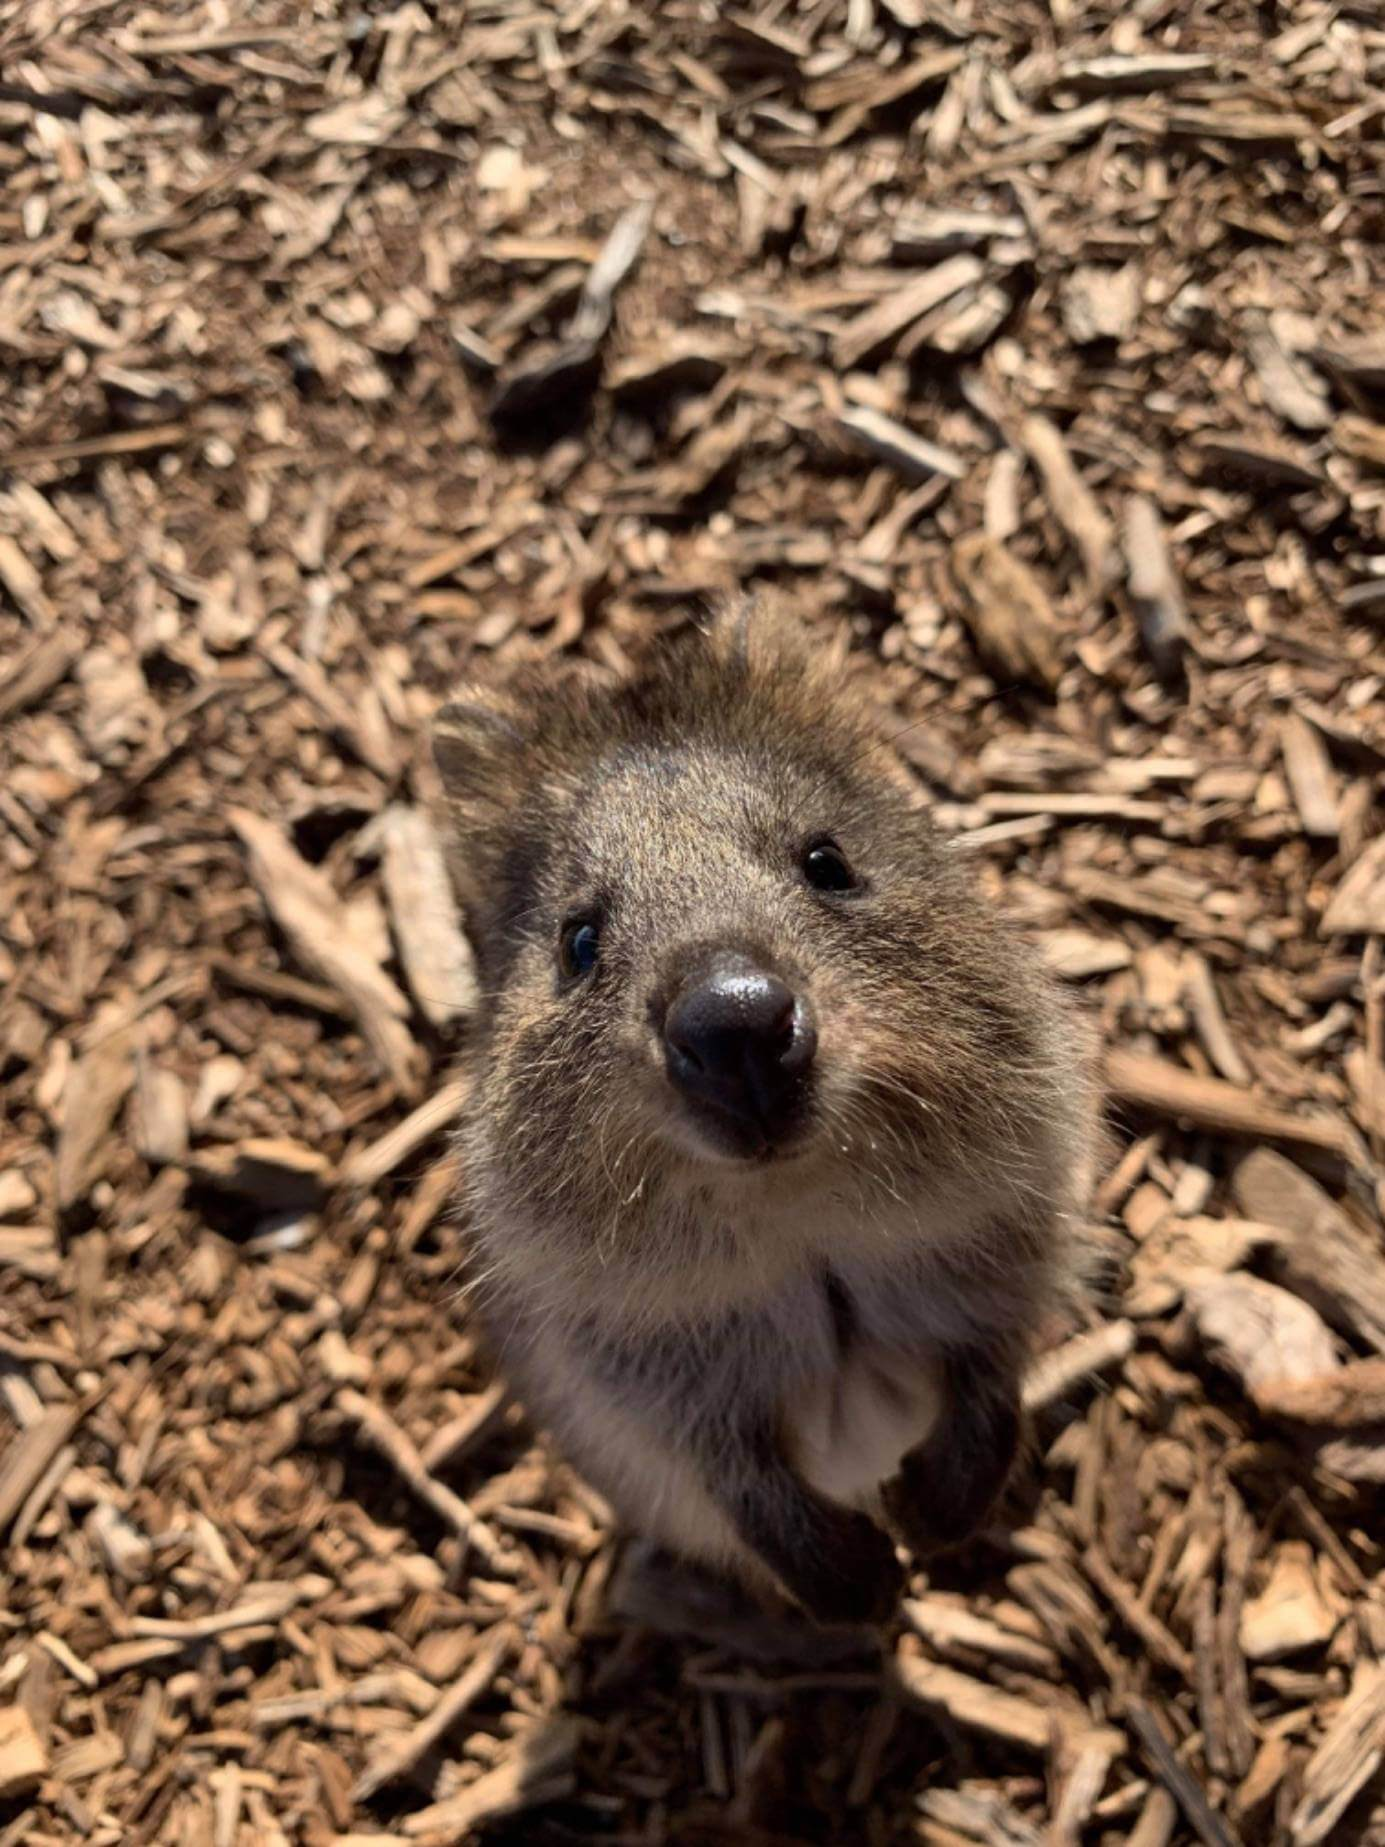 Wild Australian animal (Quokka) looking up at the camera.